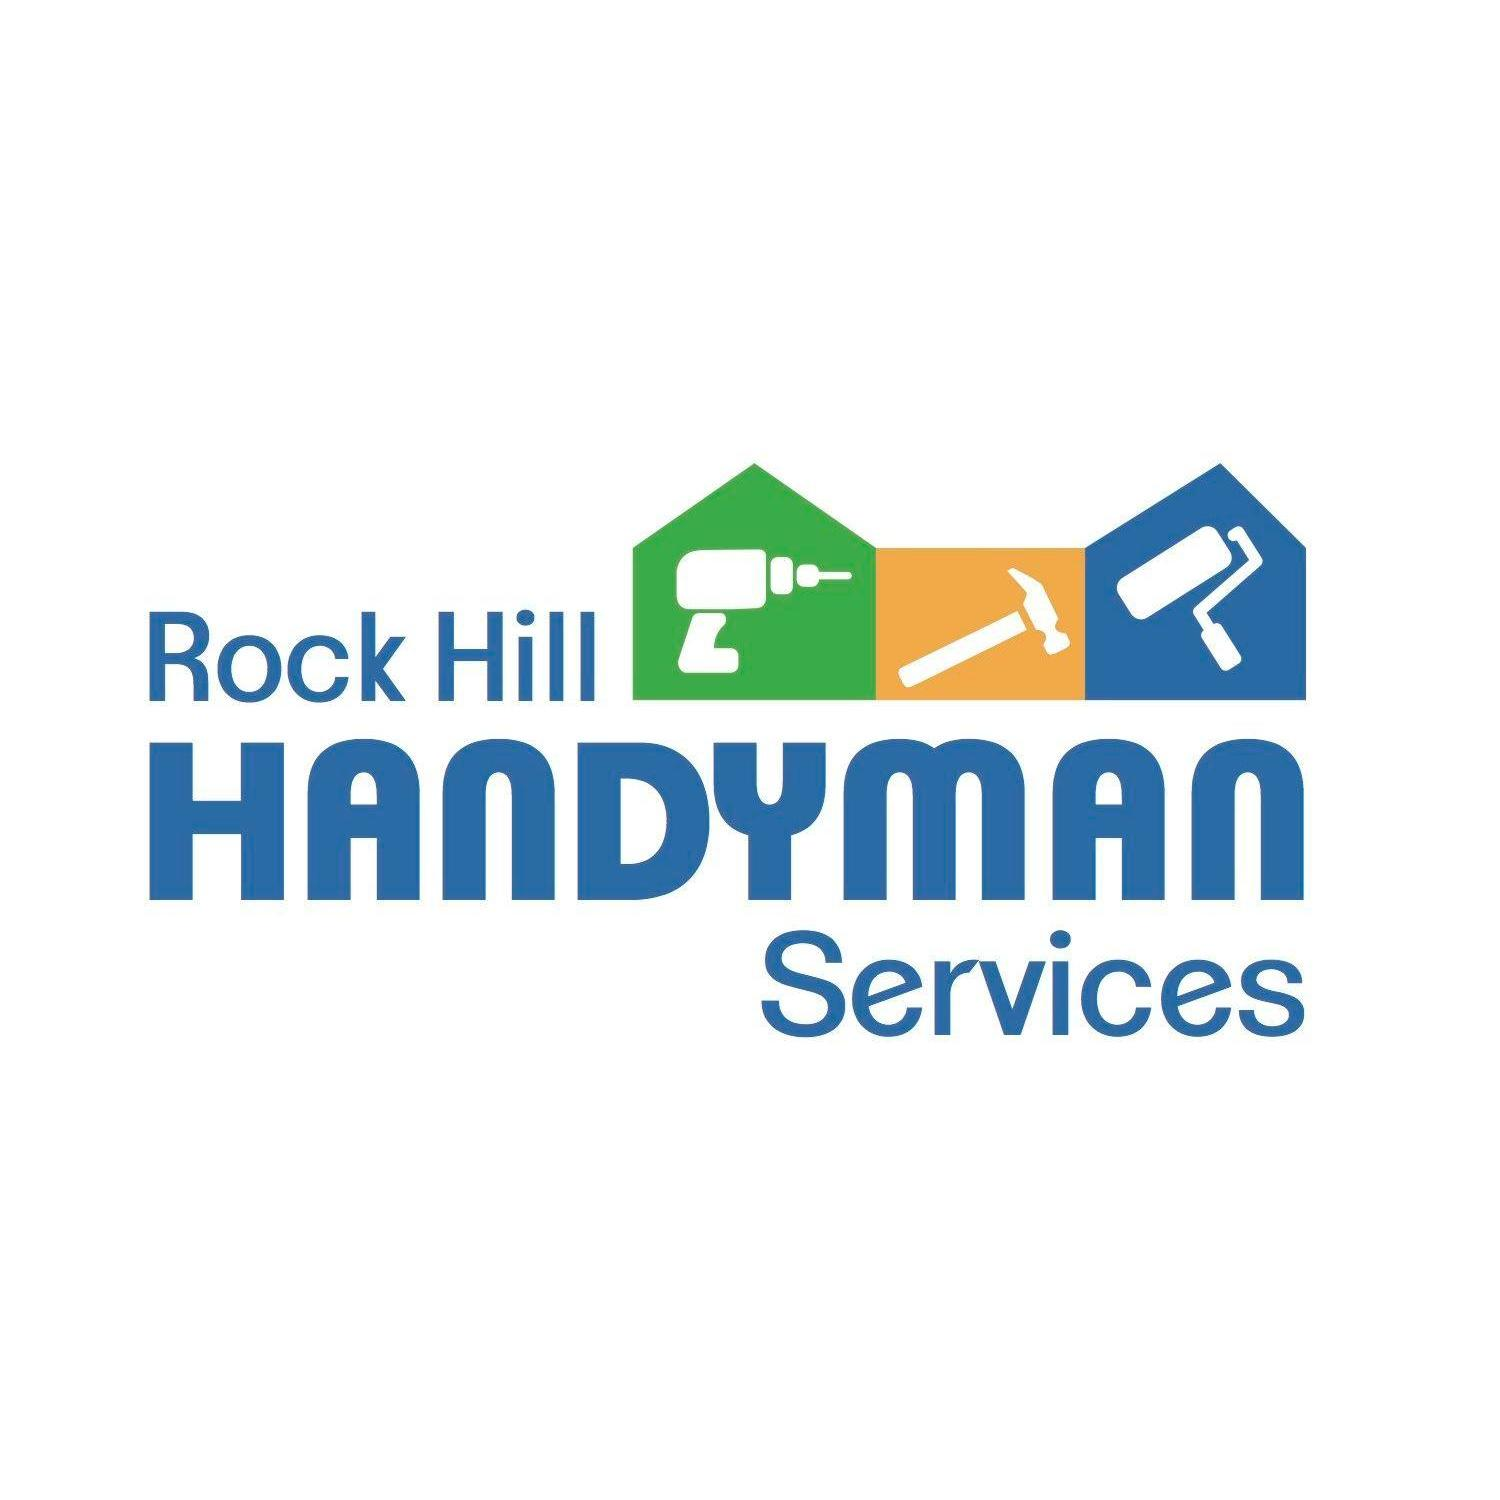 Rock Hill Handyman Services, LLC